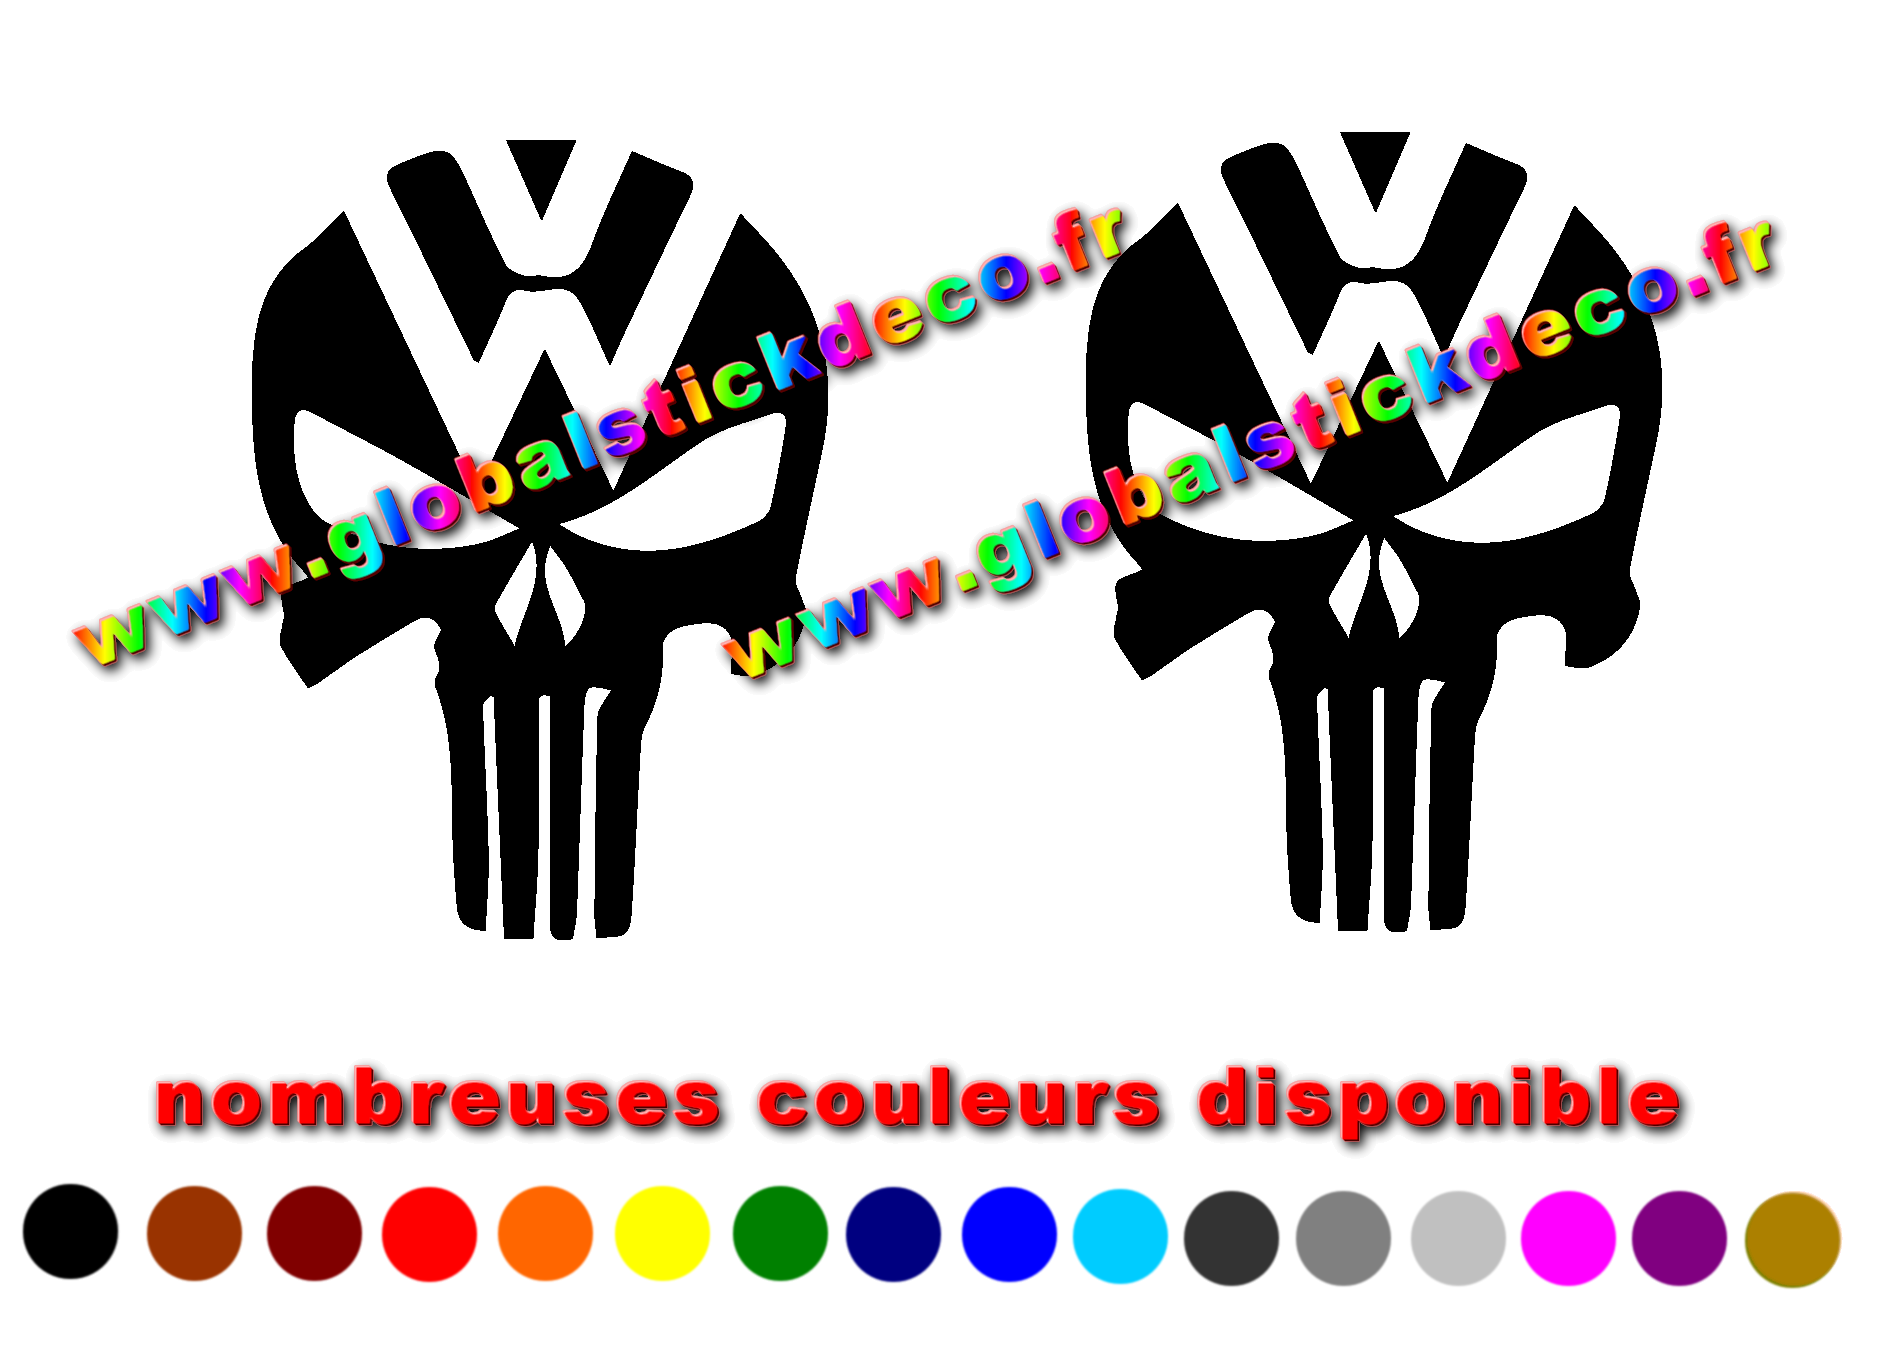 Sticker auto moto marques vw skull1 2